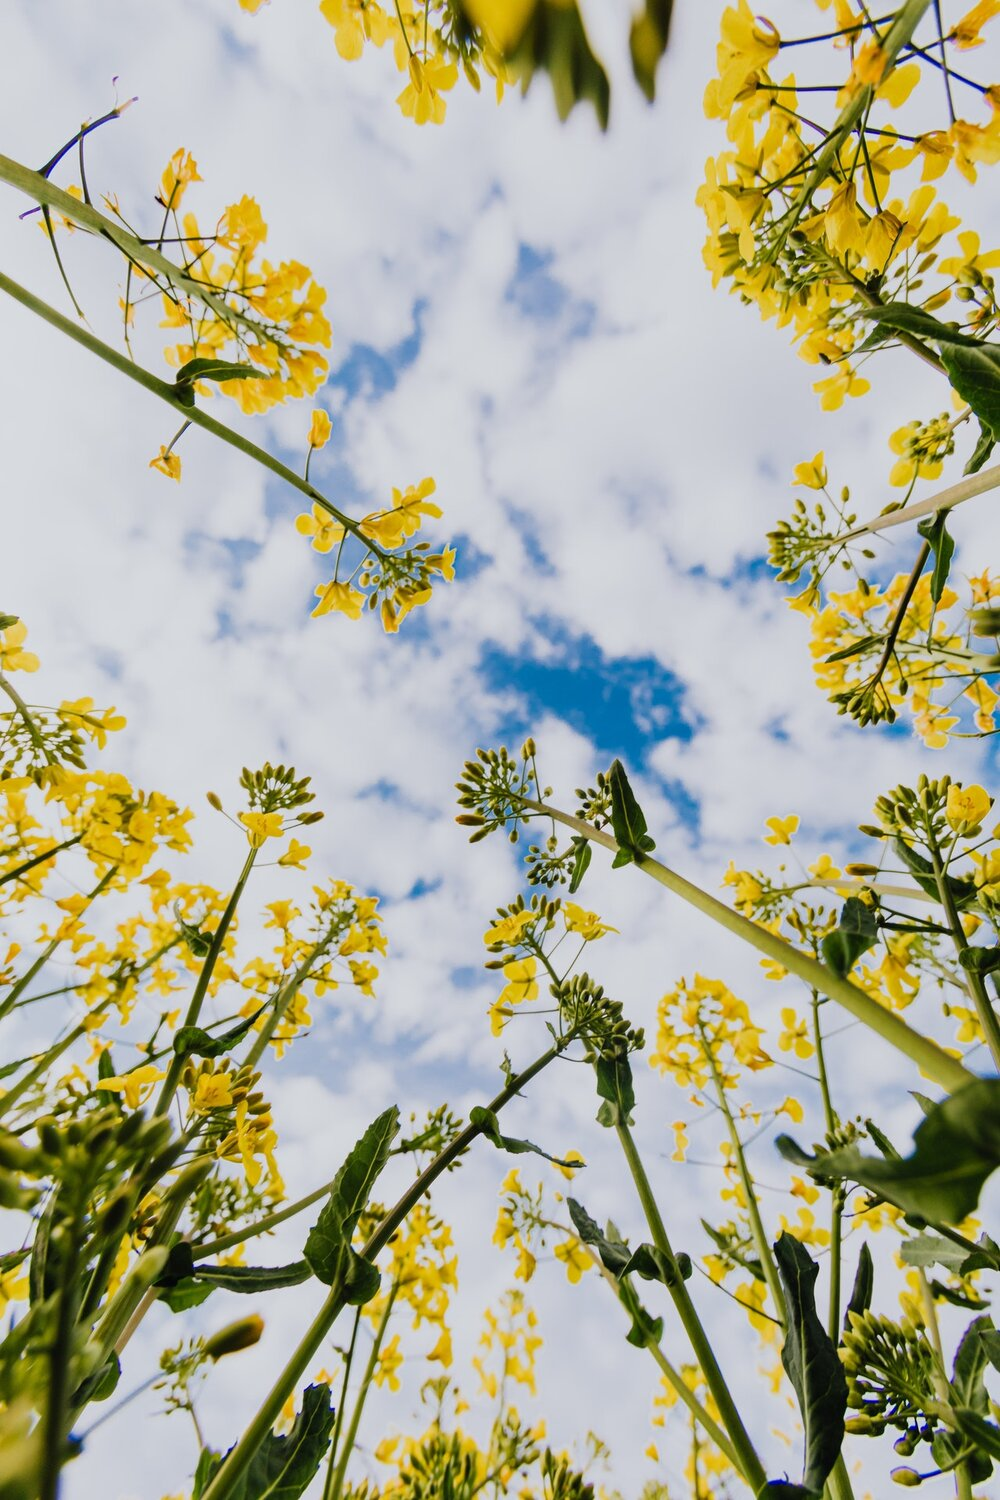 Photo of yellow flowers and sky above by Karolina Grabowska from Pexels